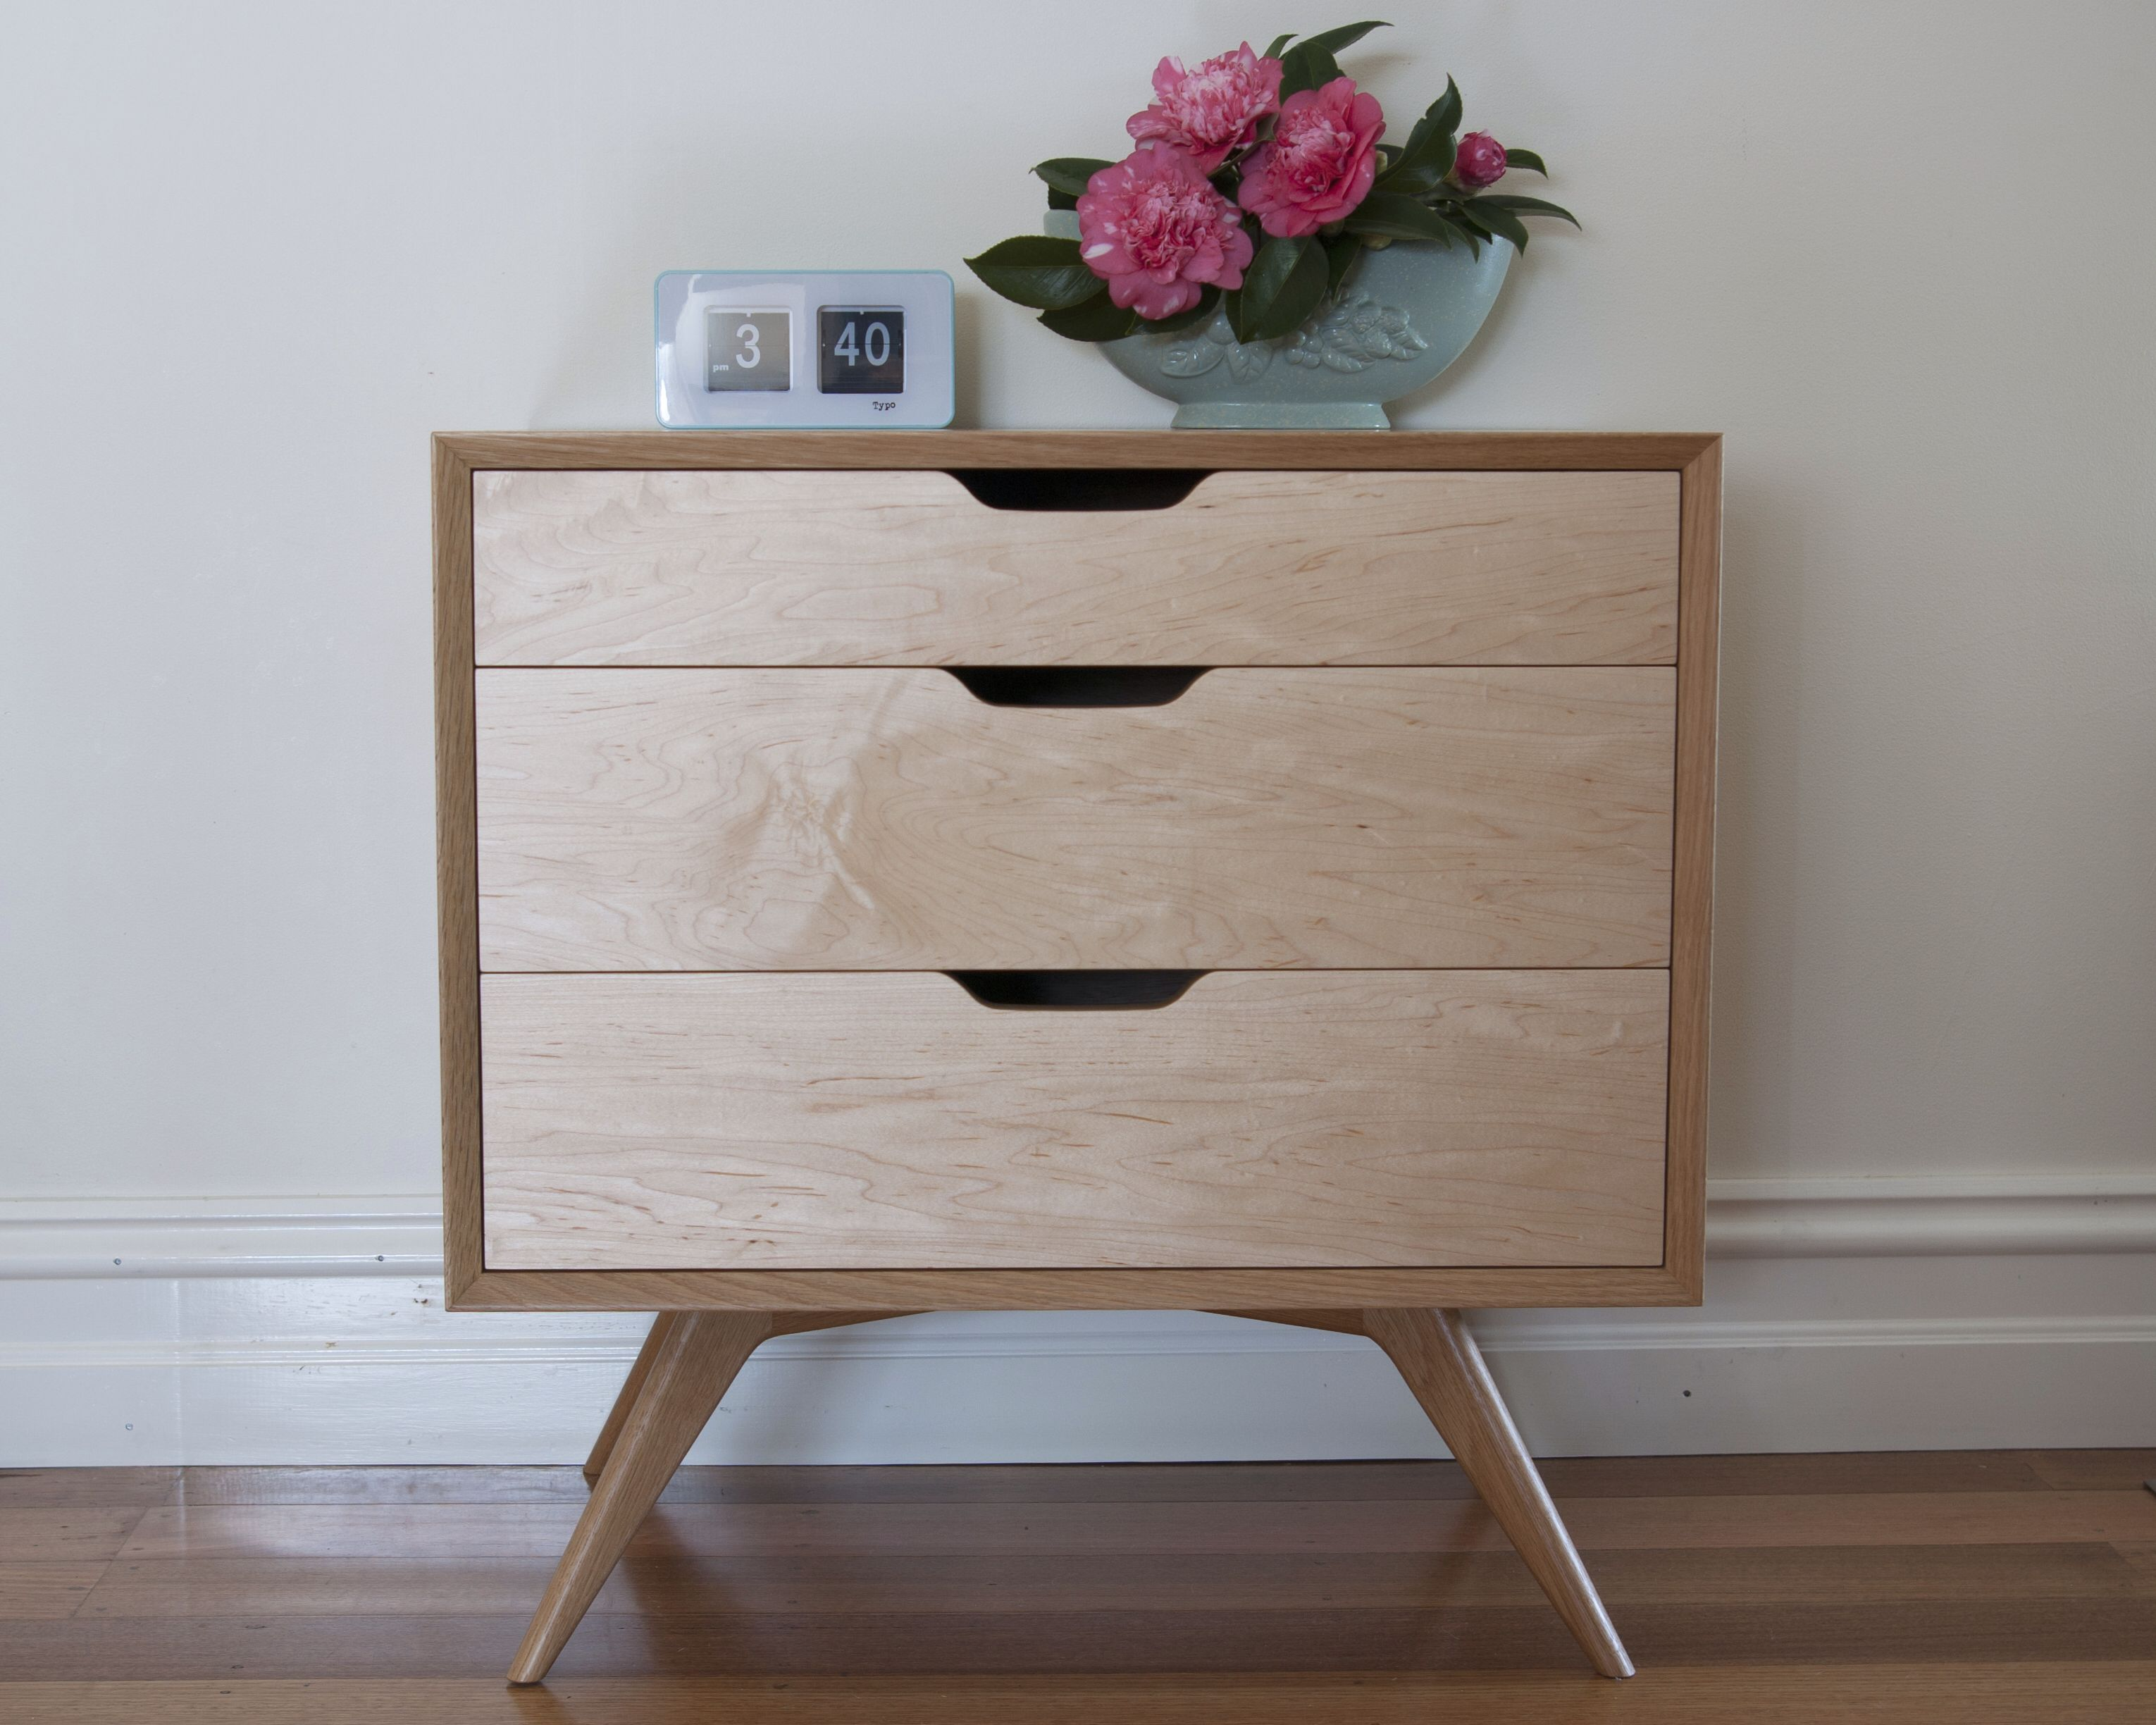 Modern design mid century timber furniture sawdust timber - Contemporary maple bedroom furniture ...